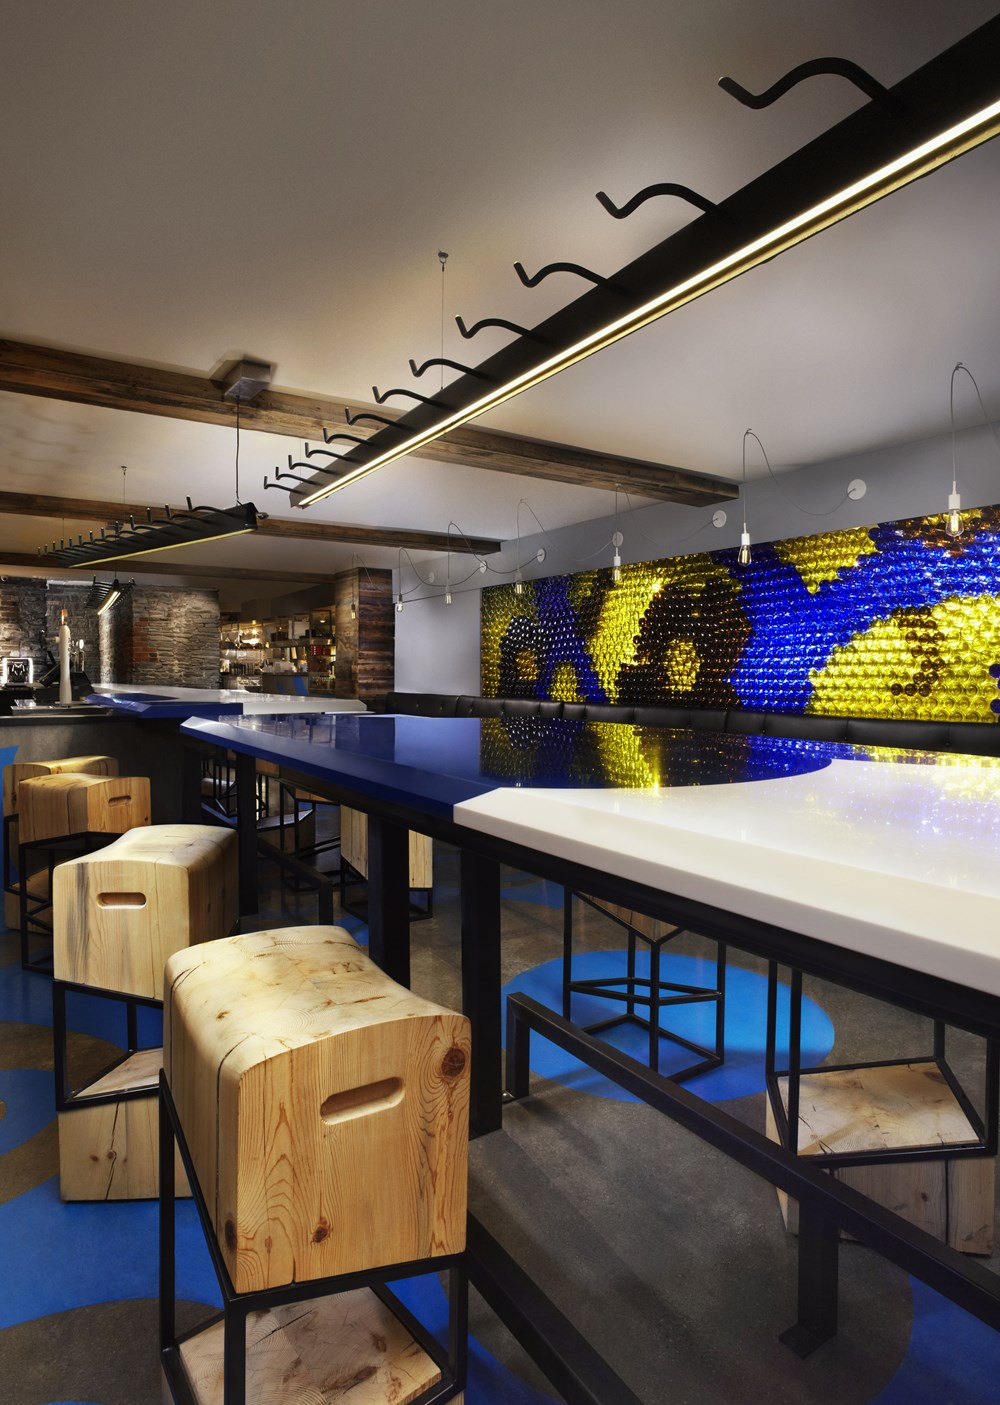 Refin tiles Perfect Accent for Gaudi-inspired Restaurant 07